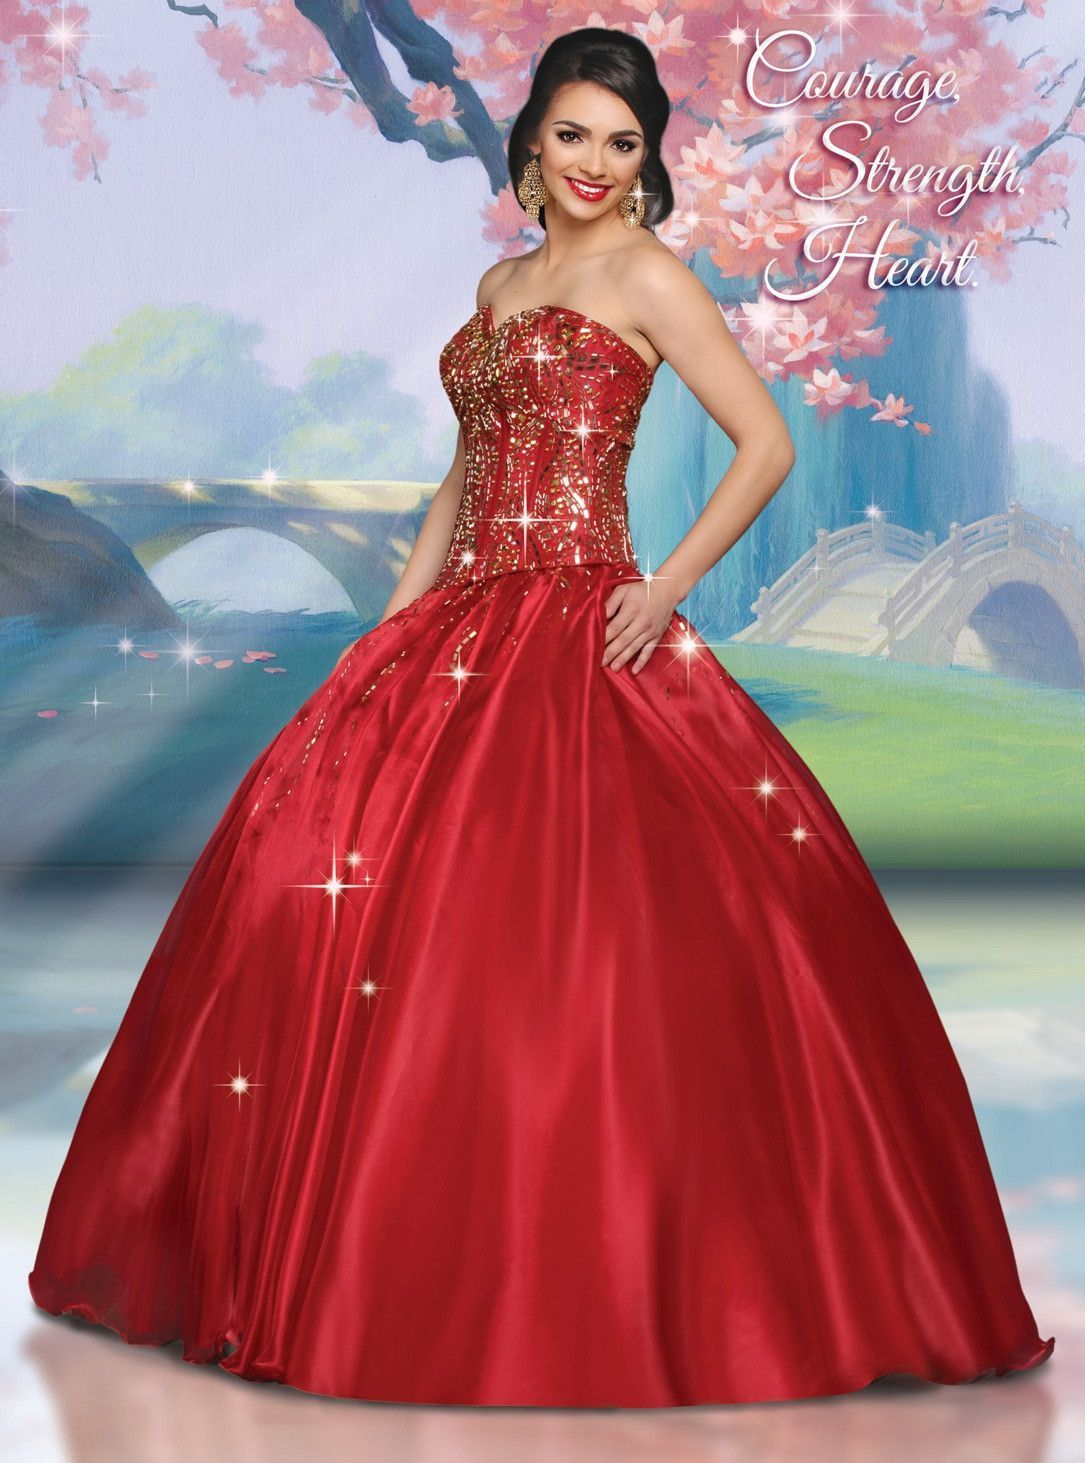 Disney Royal Ball Quinceanera Dress Mulan Style 41055 | Quinceanera ...